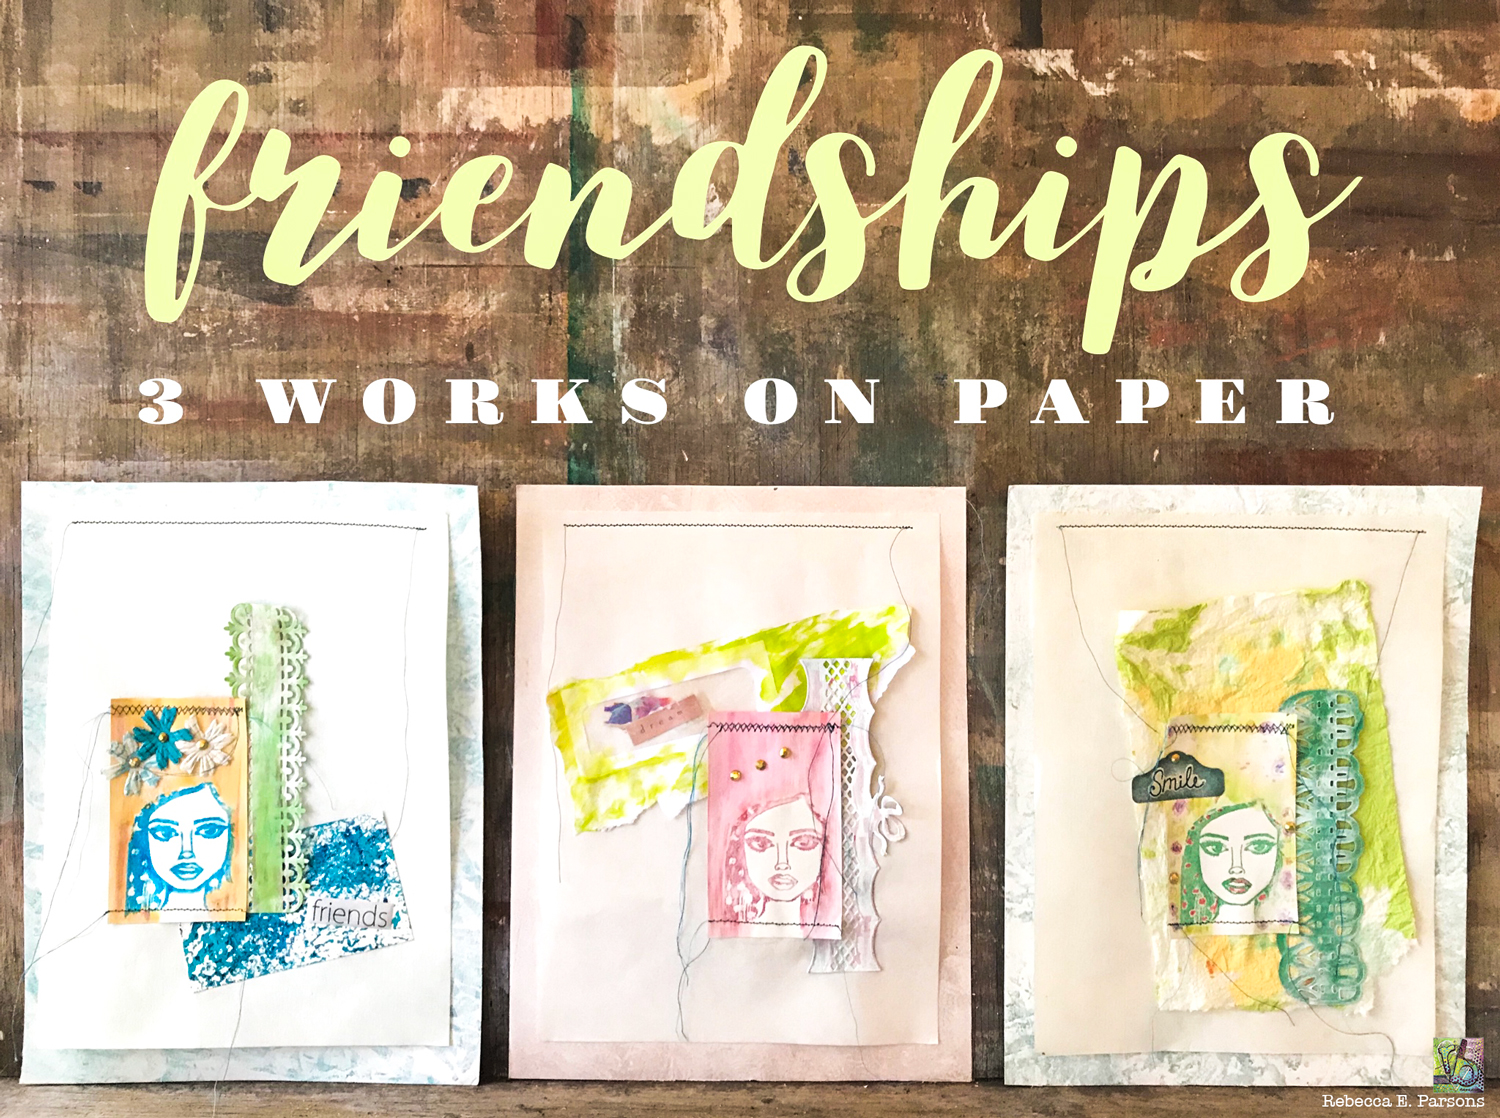 Friendships 3 Works on Paper Collage for Technique Junkies Blog Hop Celebrating Rita Barakat's New Designs!